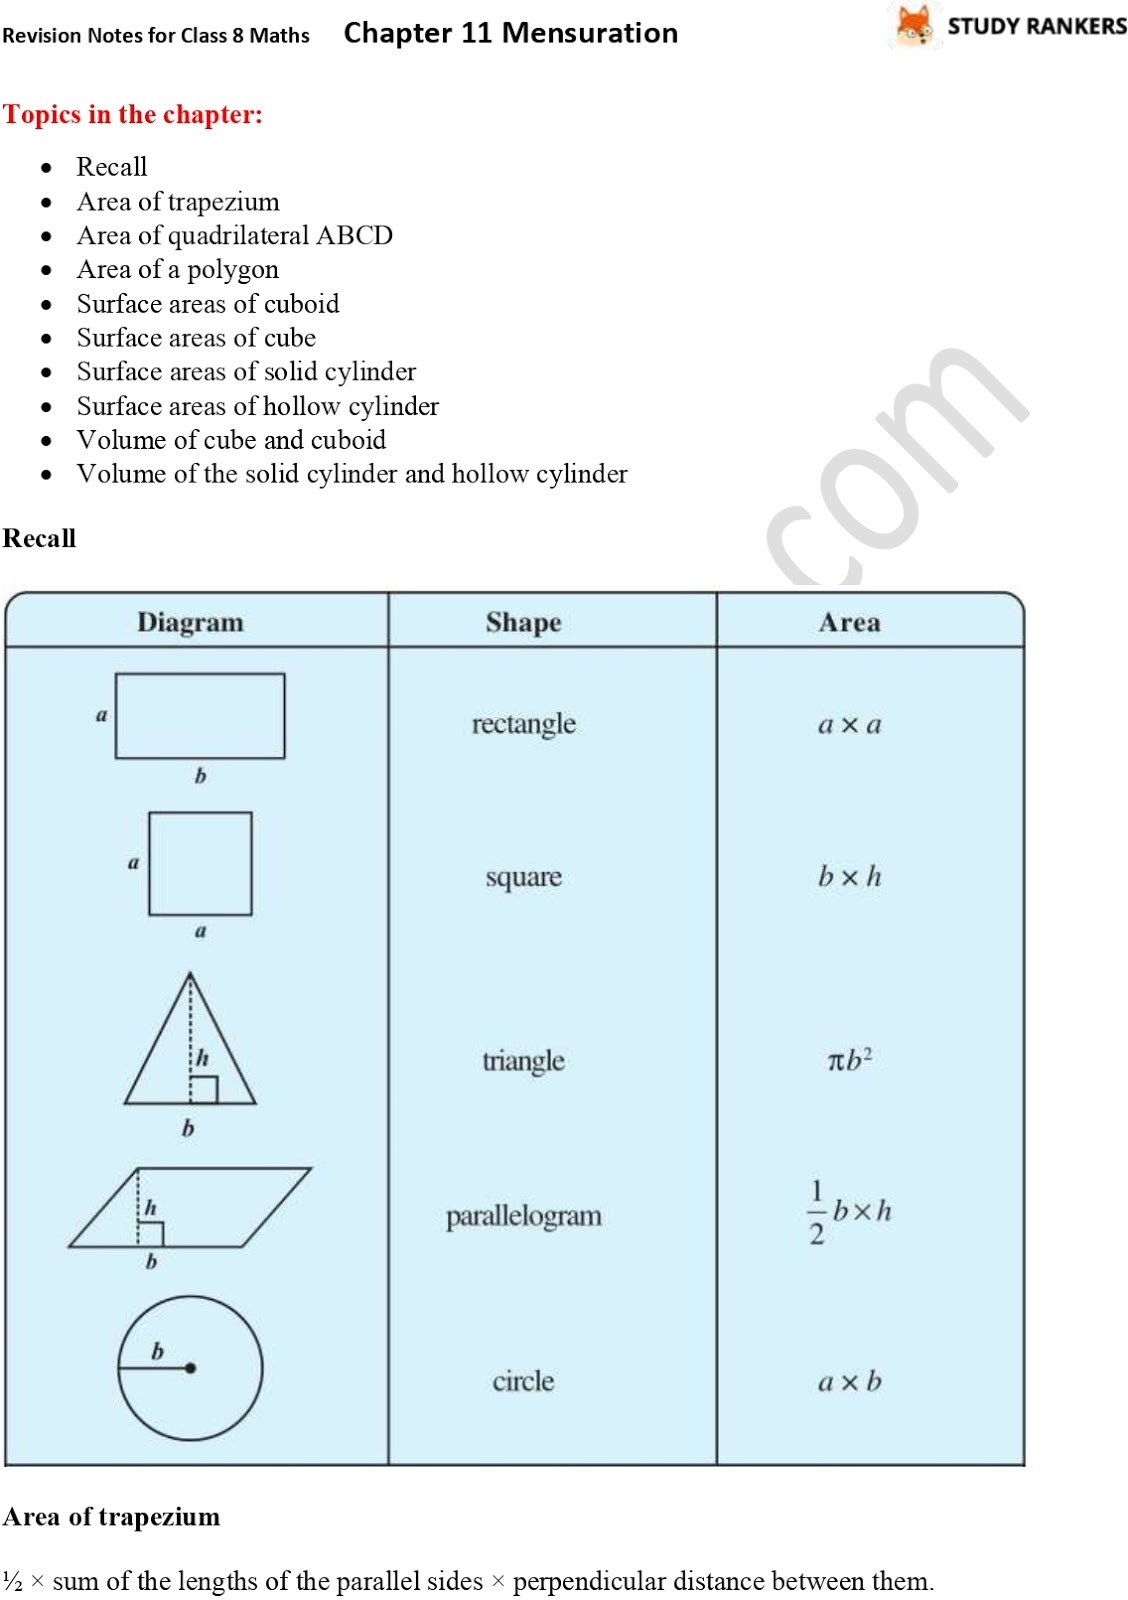 CBSE Revision Notes for Class 8 Chapter 11 Mensuration Part 1